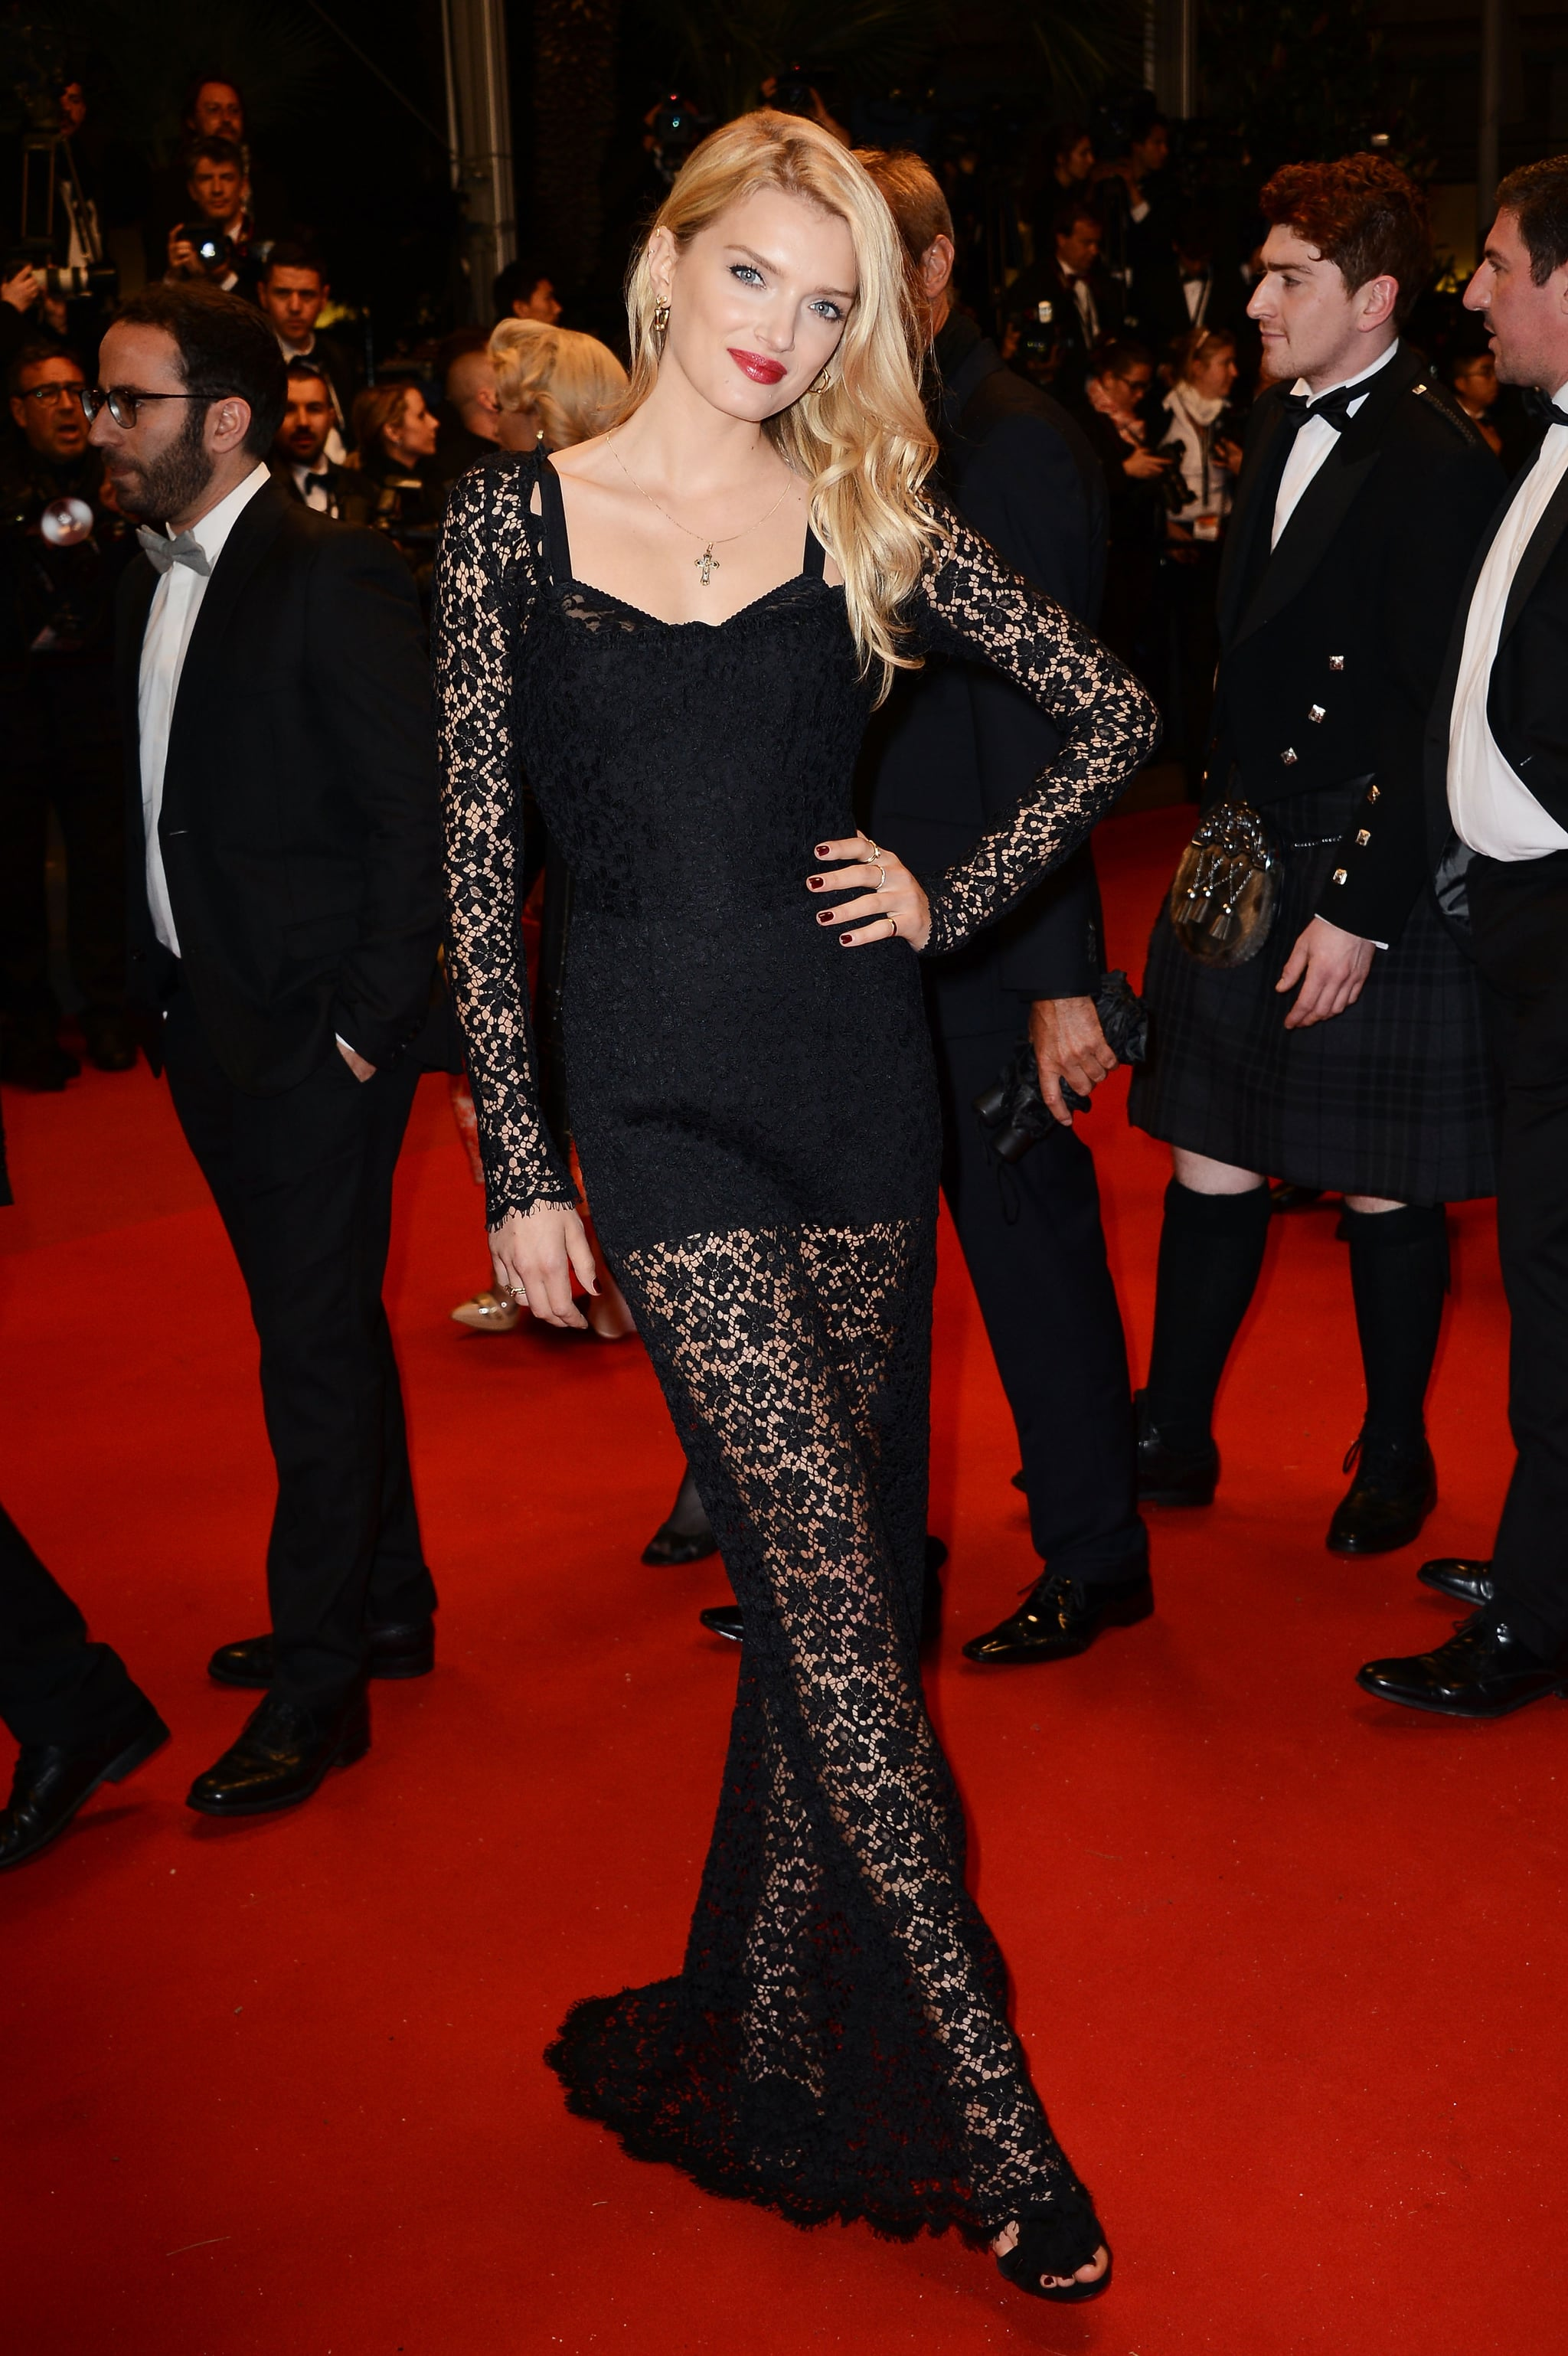 Lily Donaldson at the Cannes premiere of Only God Forgives.